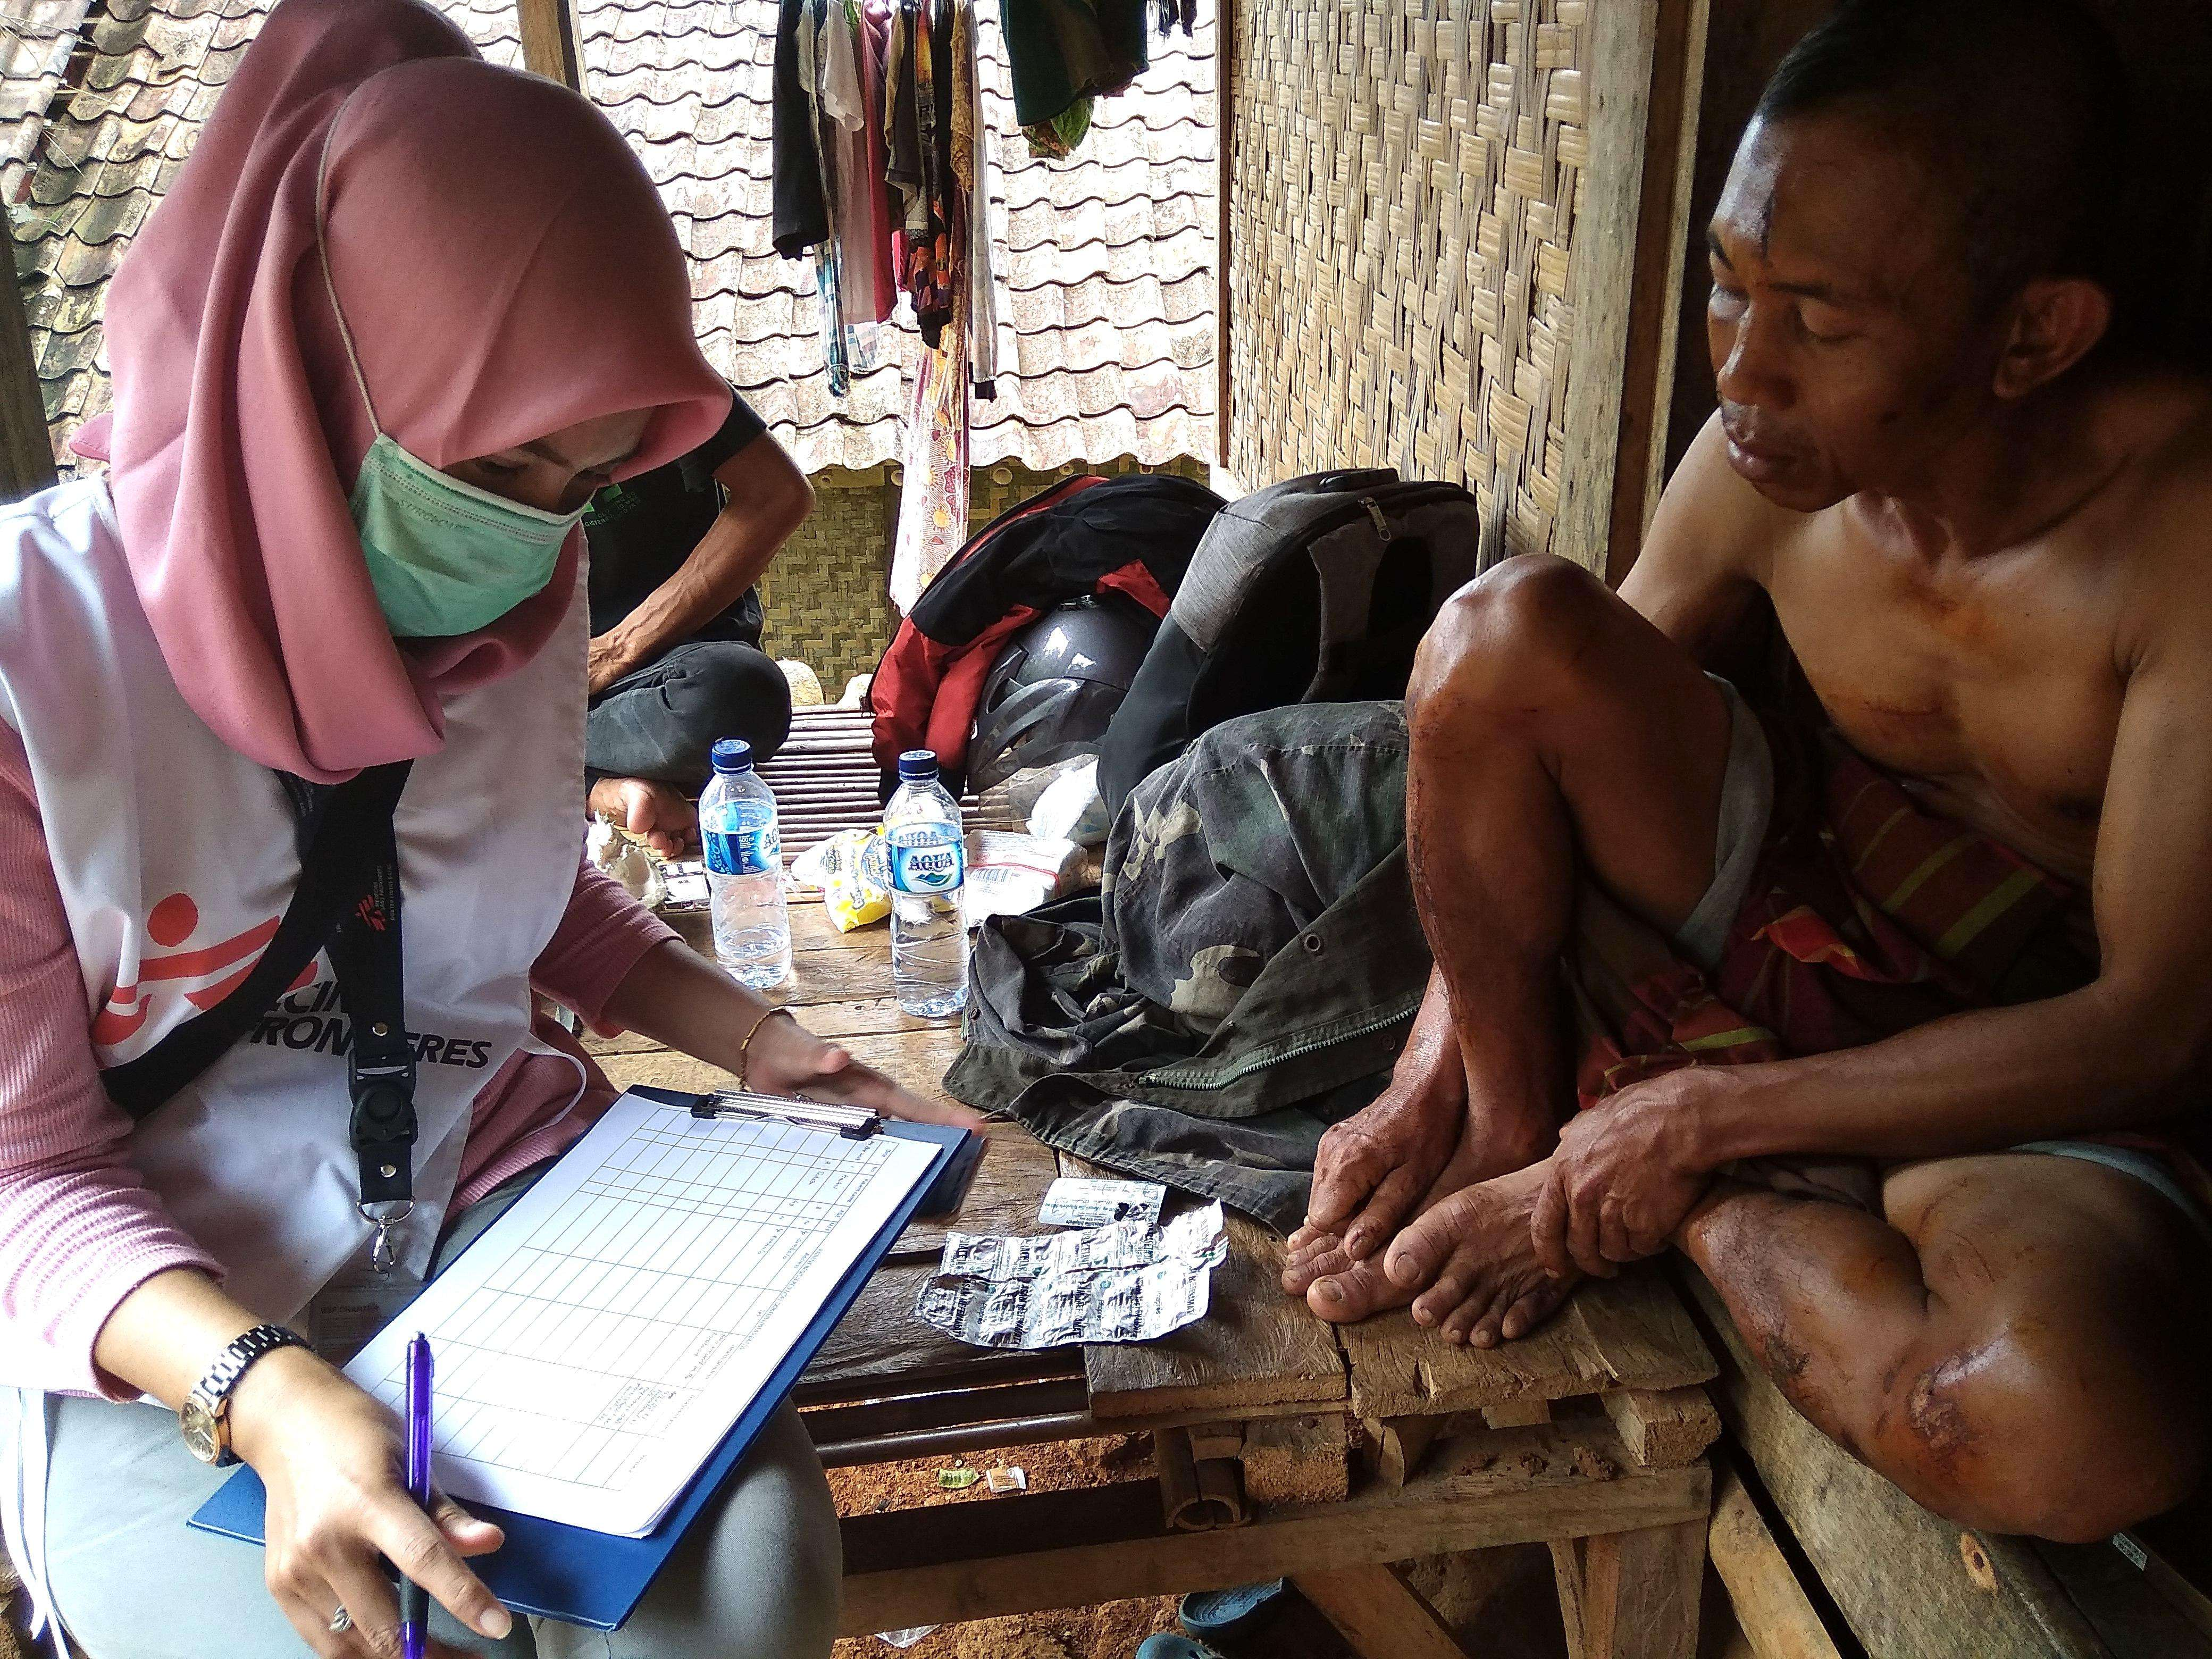 MSF midwife Dina Afriyanti interviews a man in Carita, Pandeglang district, one of the areas worst affected by the December 22 tsunami that struck Indonesia.